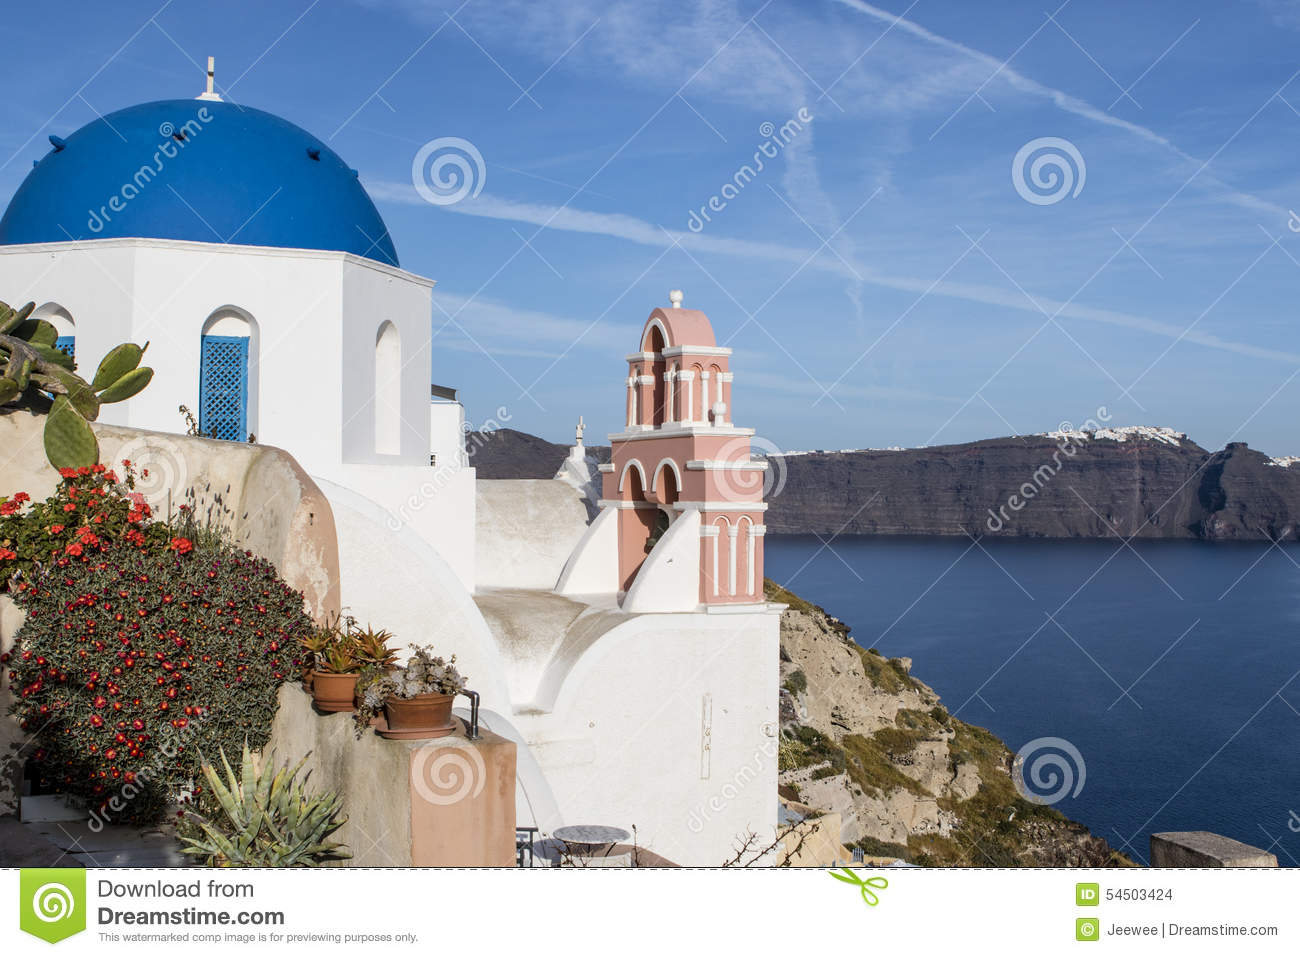 A small white Greek Orthodox church with a typical blue roof on the cliff in Oia, Santorini, Cyclades Greece